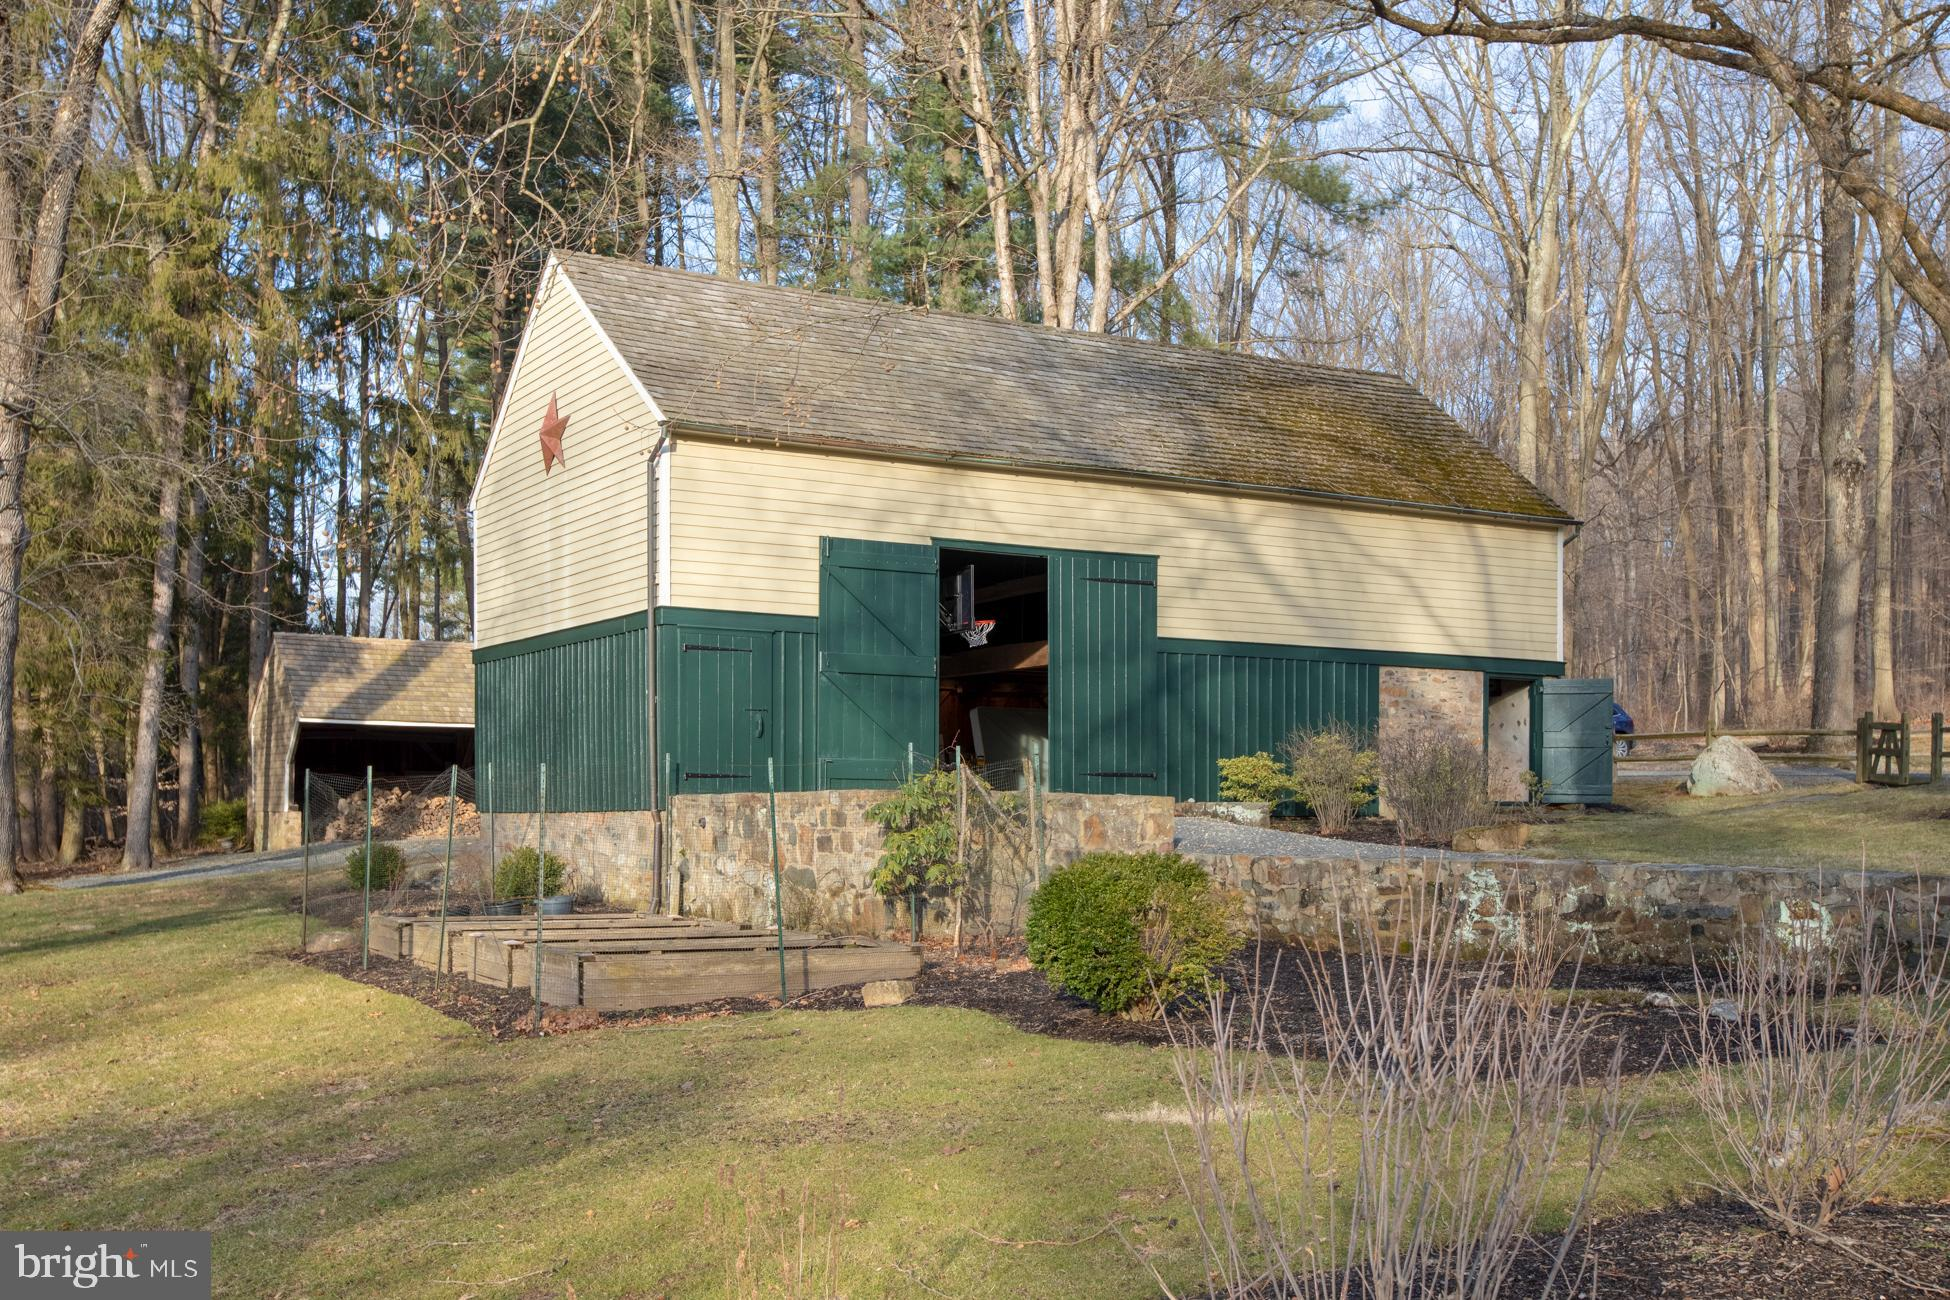 A  barn ready for parties or could stable horses.